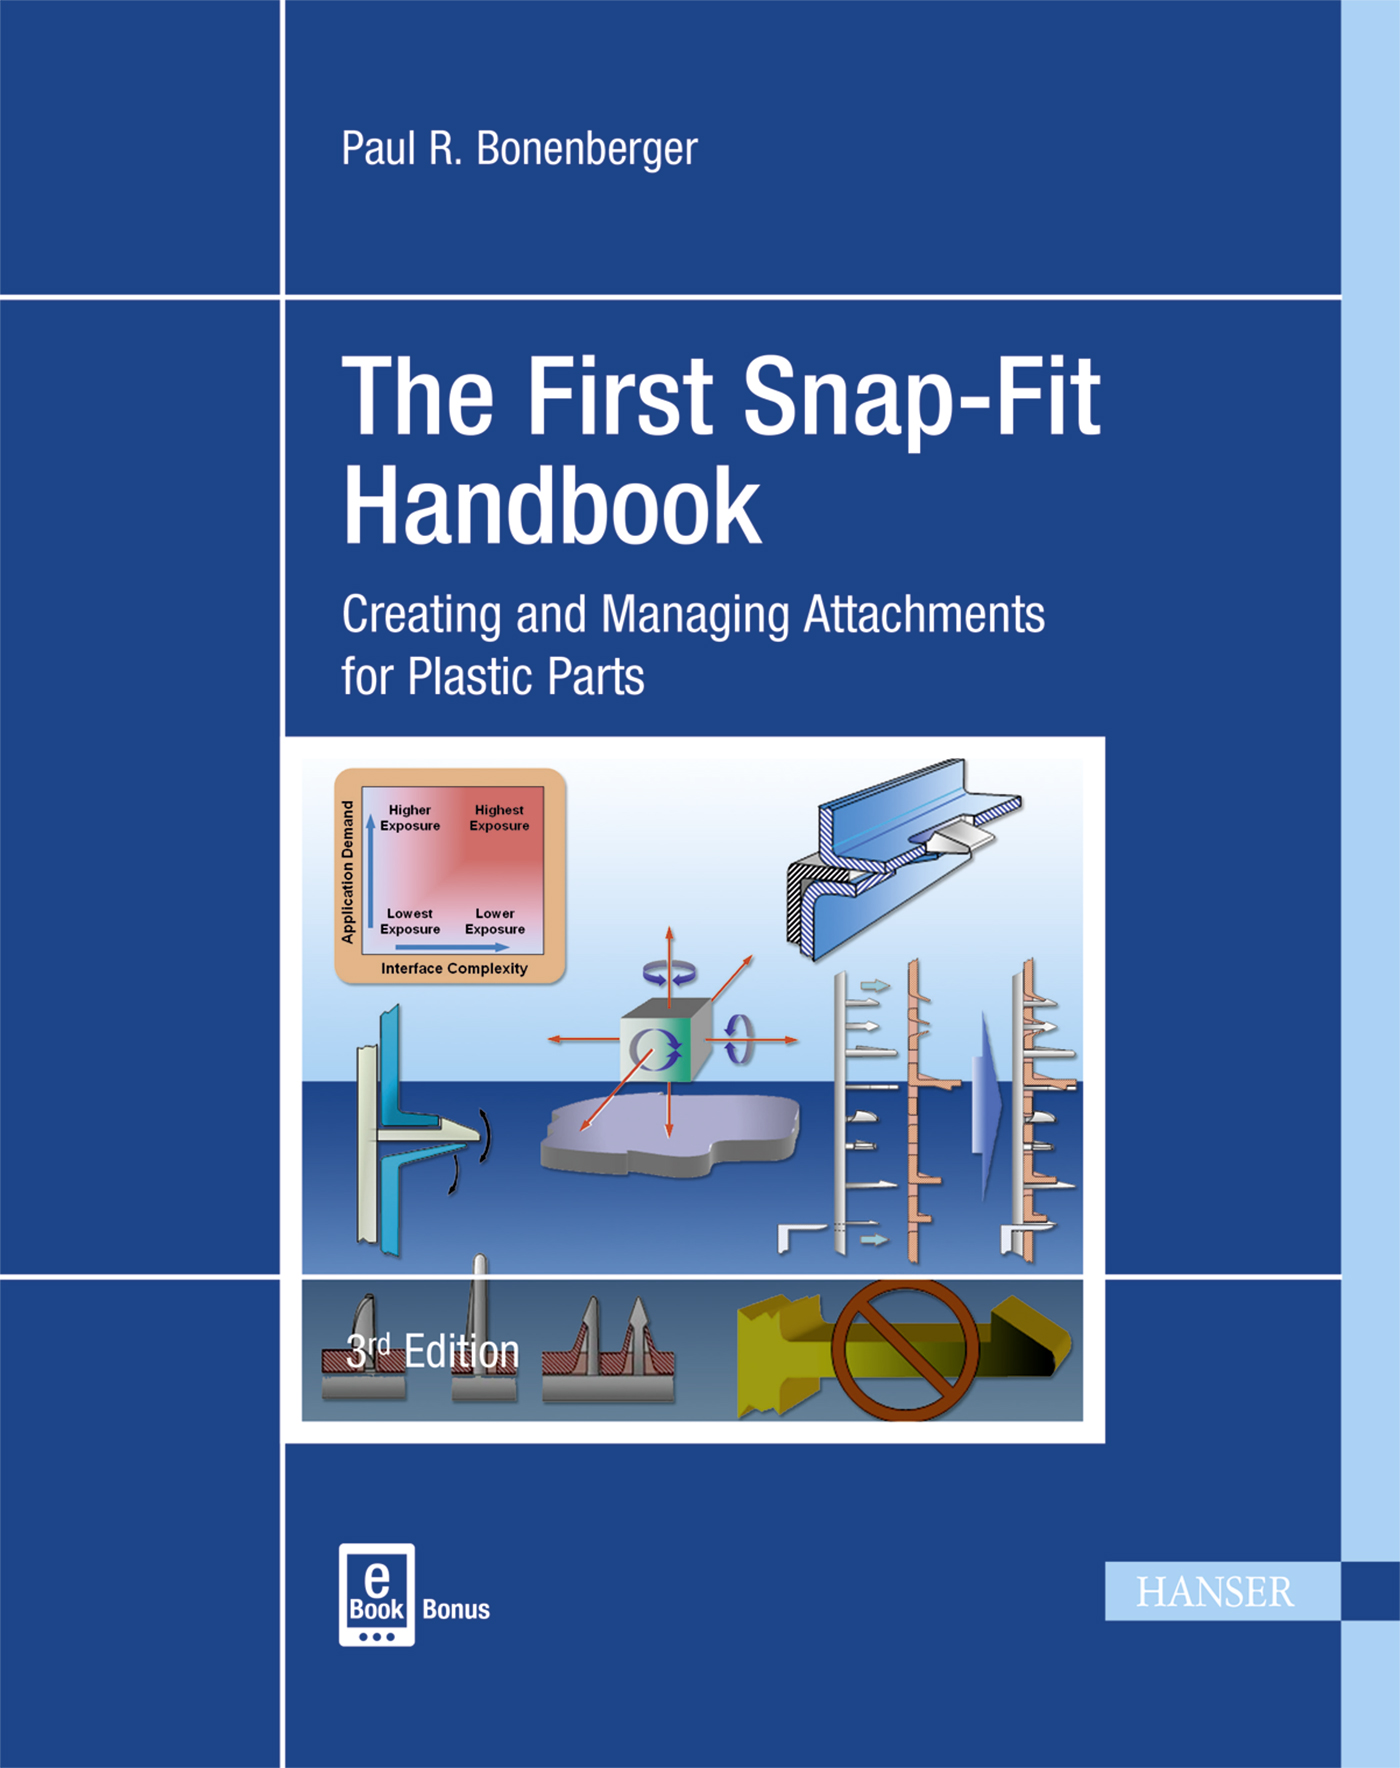 Bonenberger, The First Snap-Fit Handbook, 978-1-56990-595-1